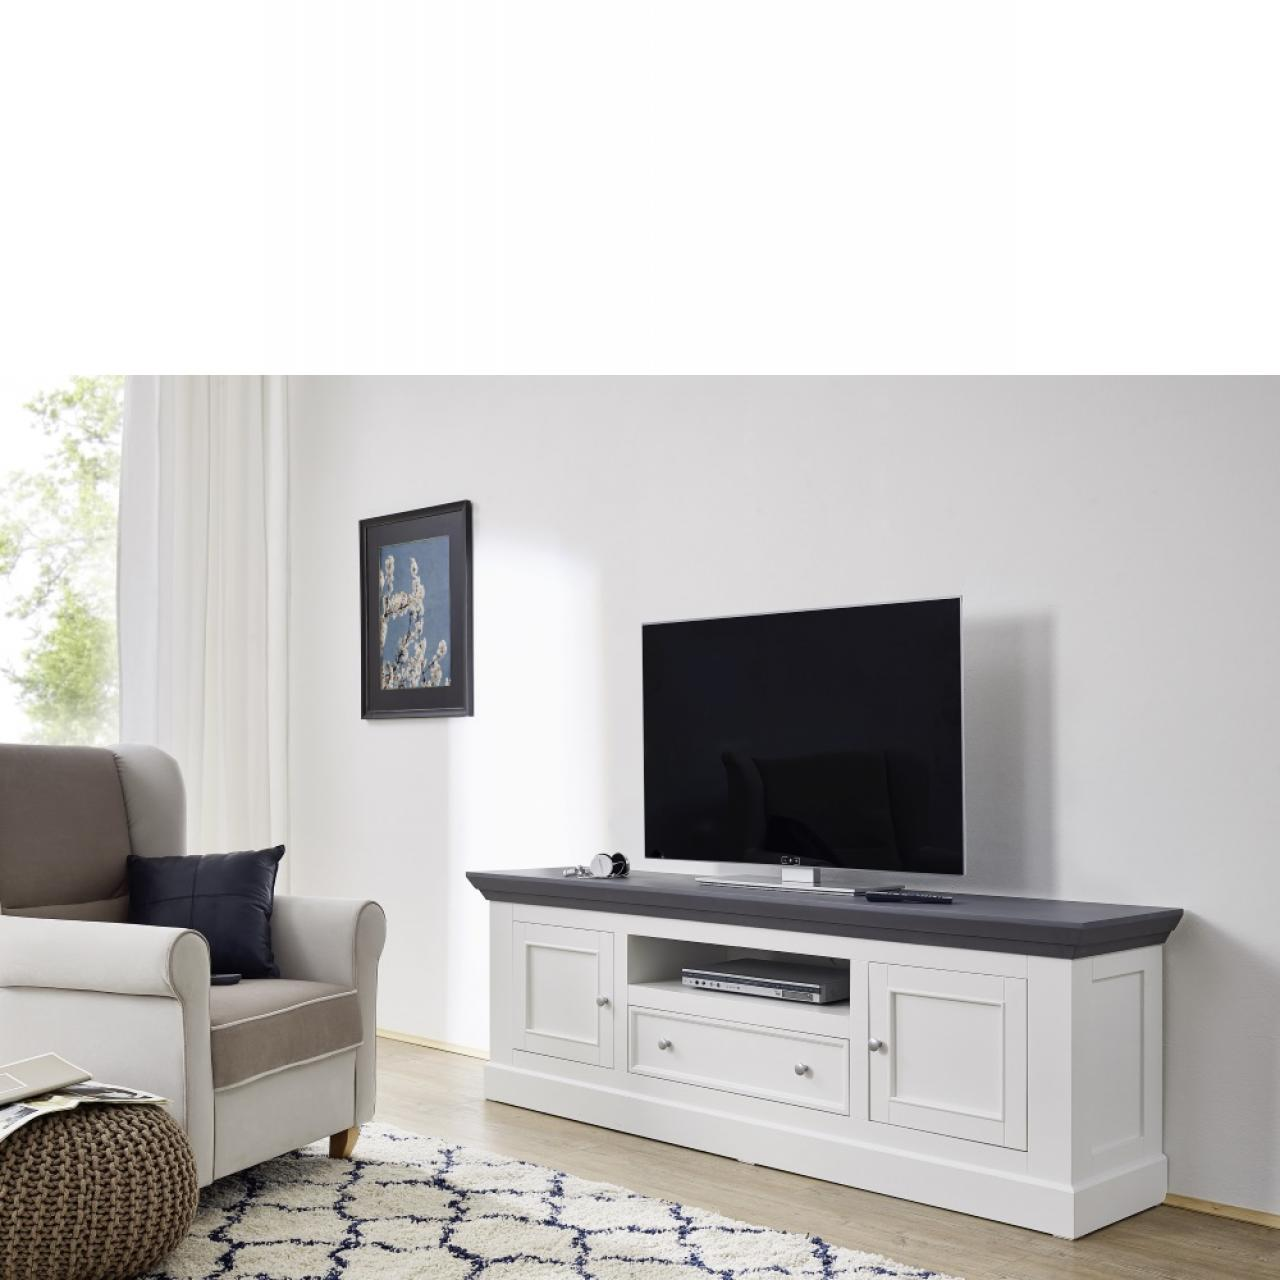 tv lowboard aus paulowniaholz landhausstil wei m bel. Black Bedroom Furniture Sets. Home Design Ideas